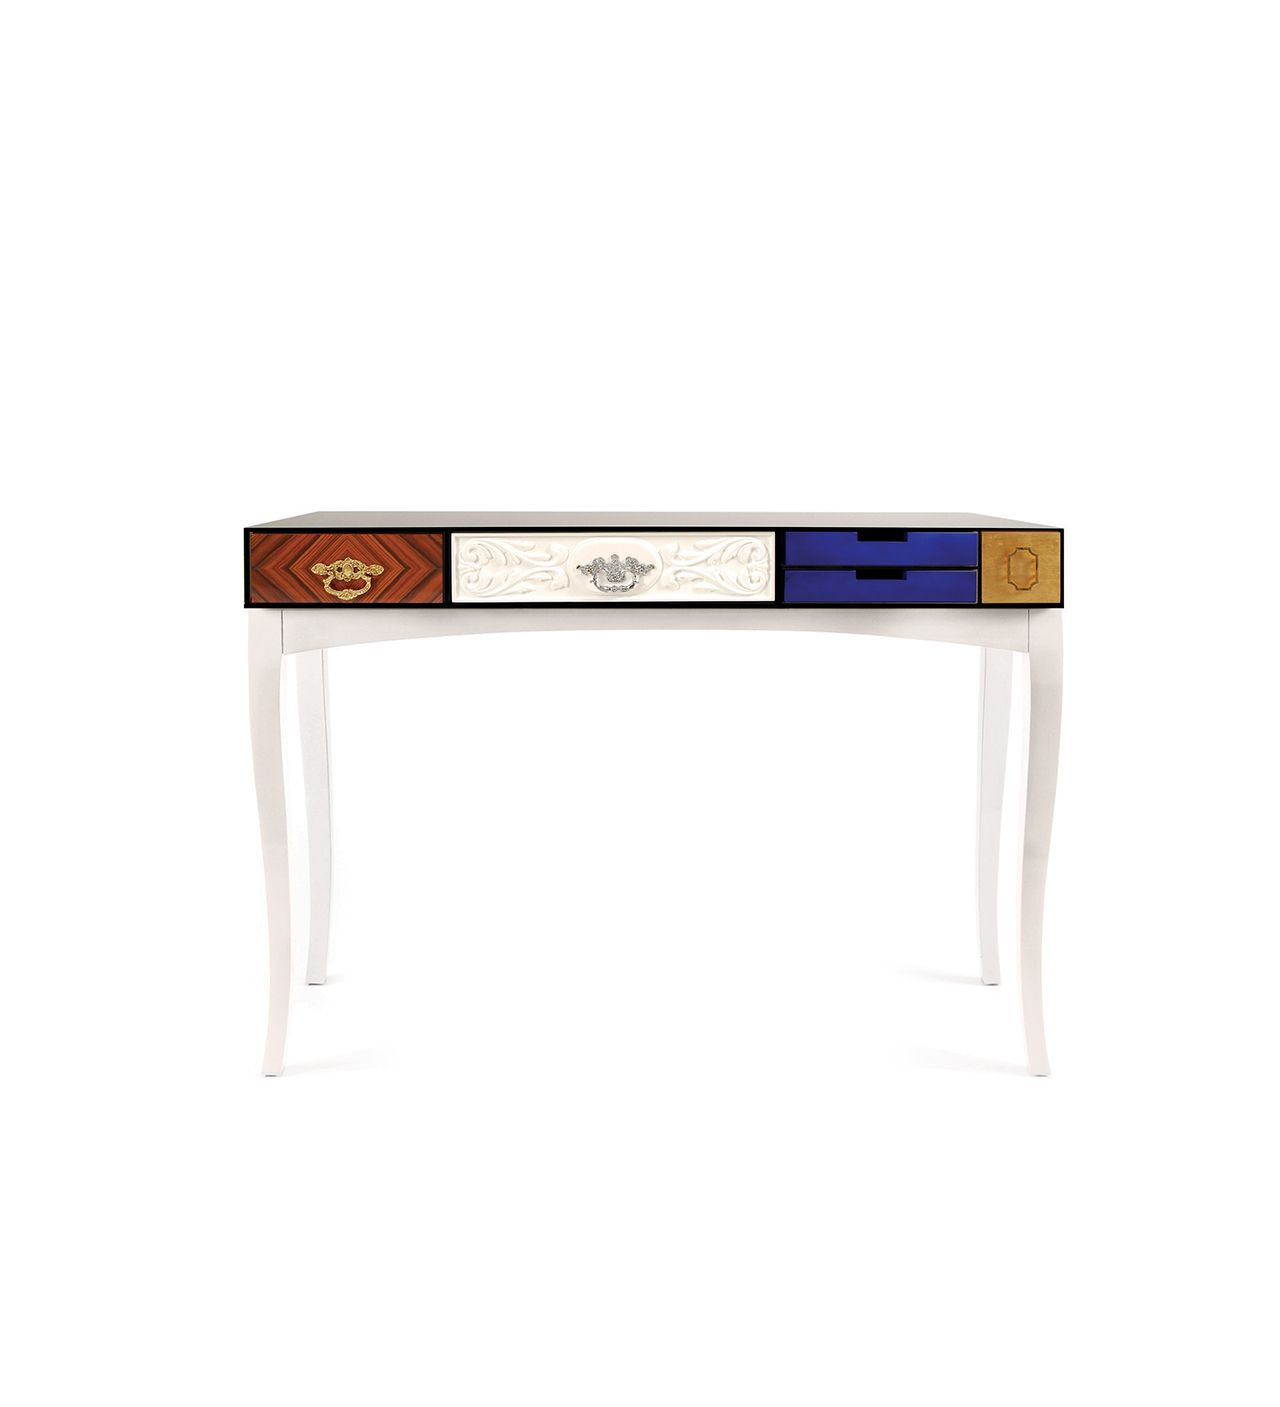 Contemporary hallway furniture   Narrow Modern Console Tables for Small Hall Entrances  Small hall